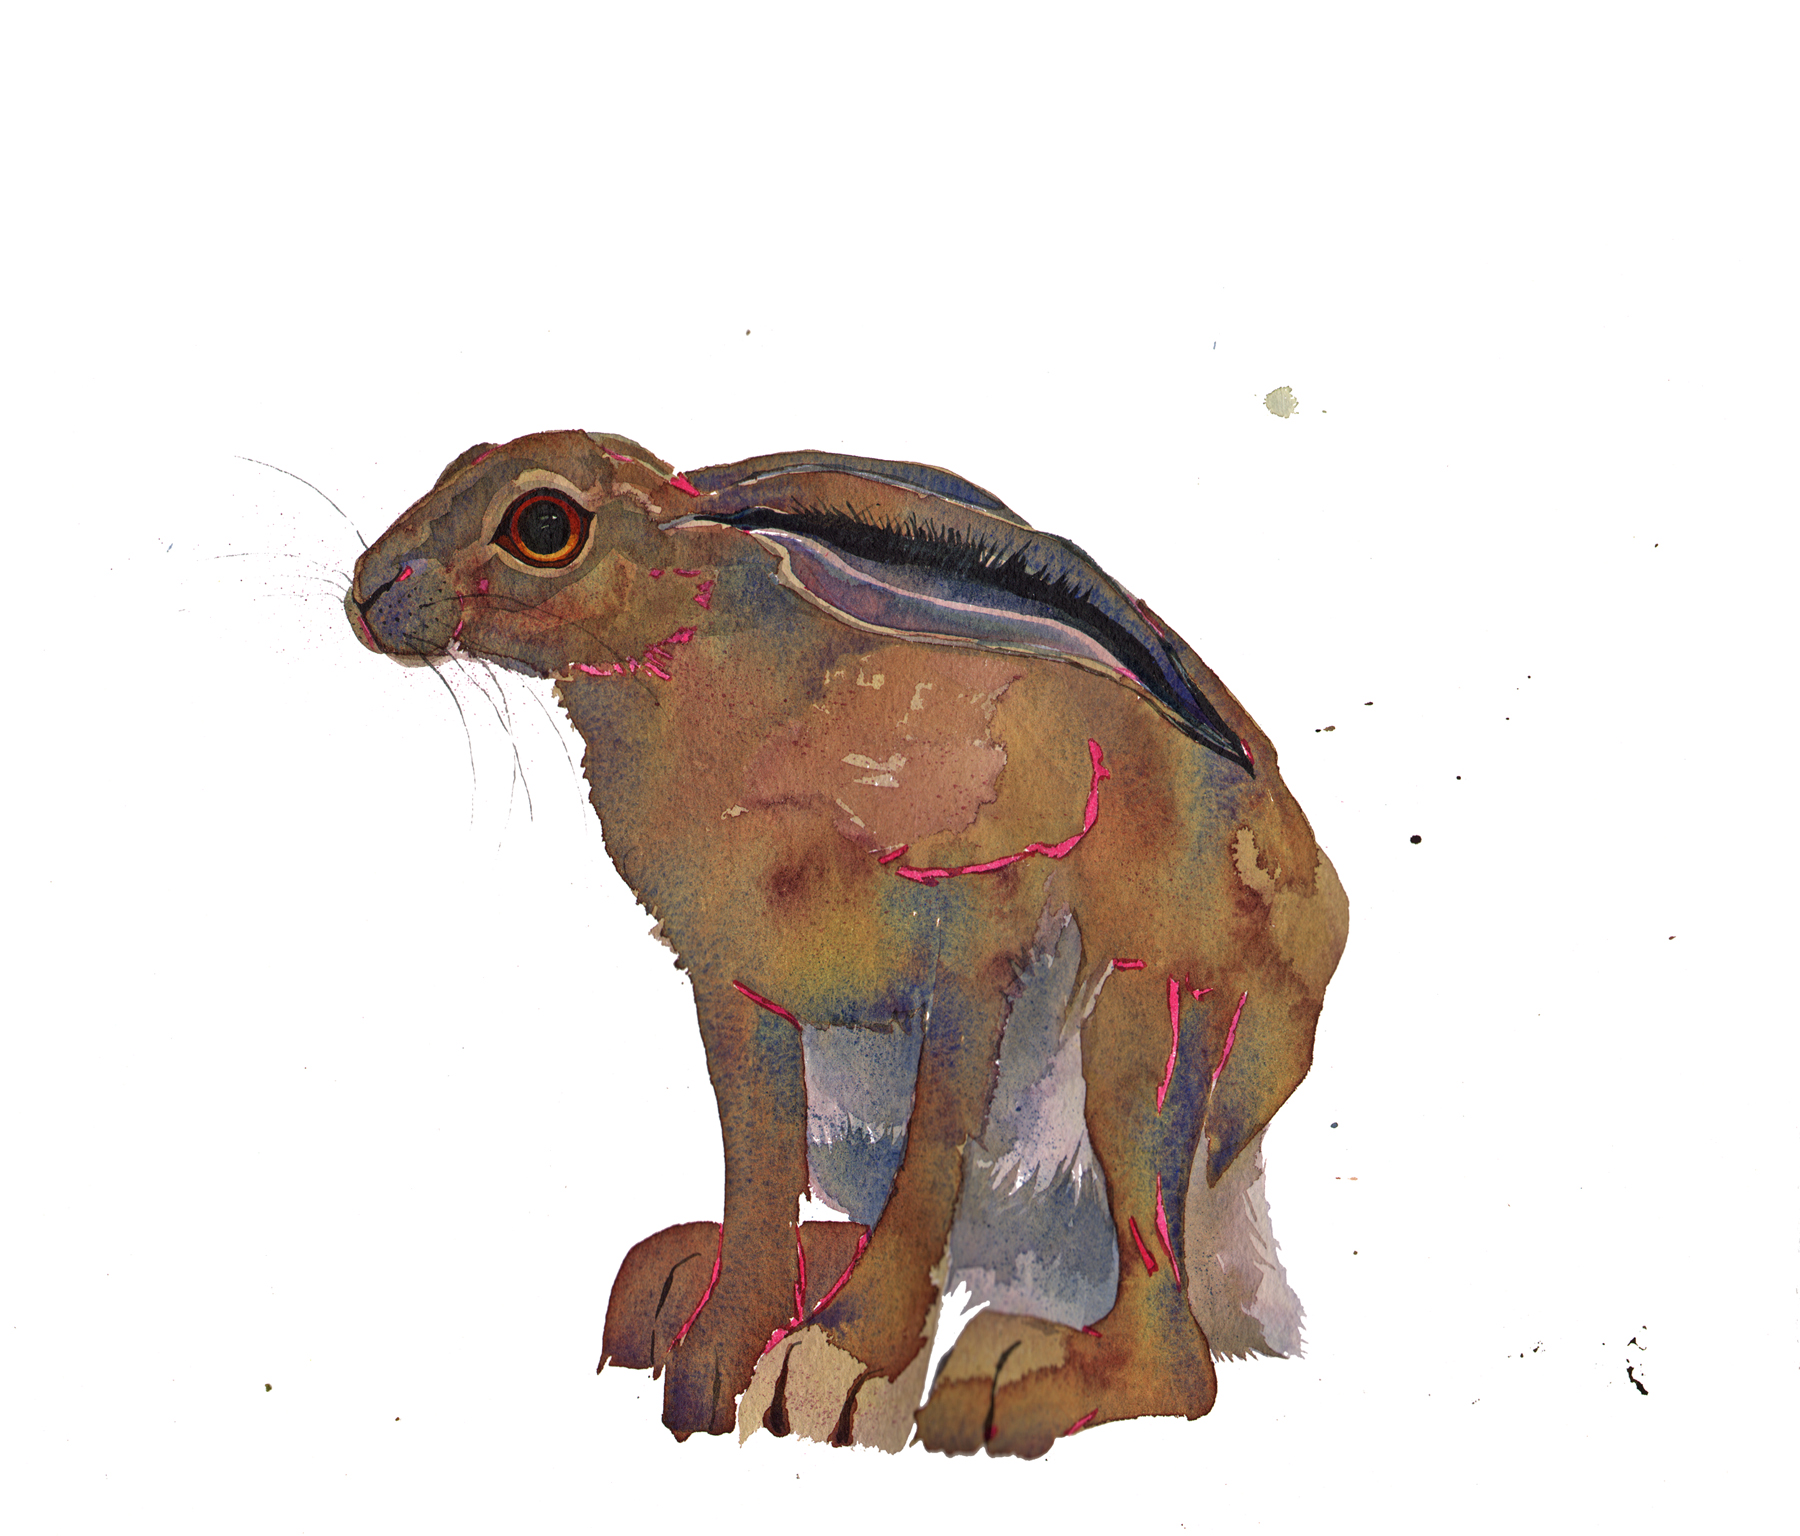 Hare, Sitting, New image